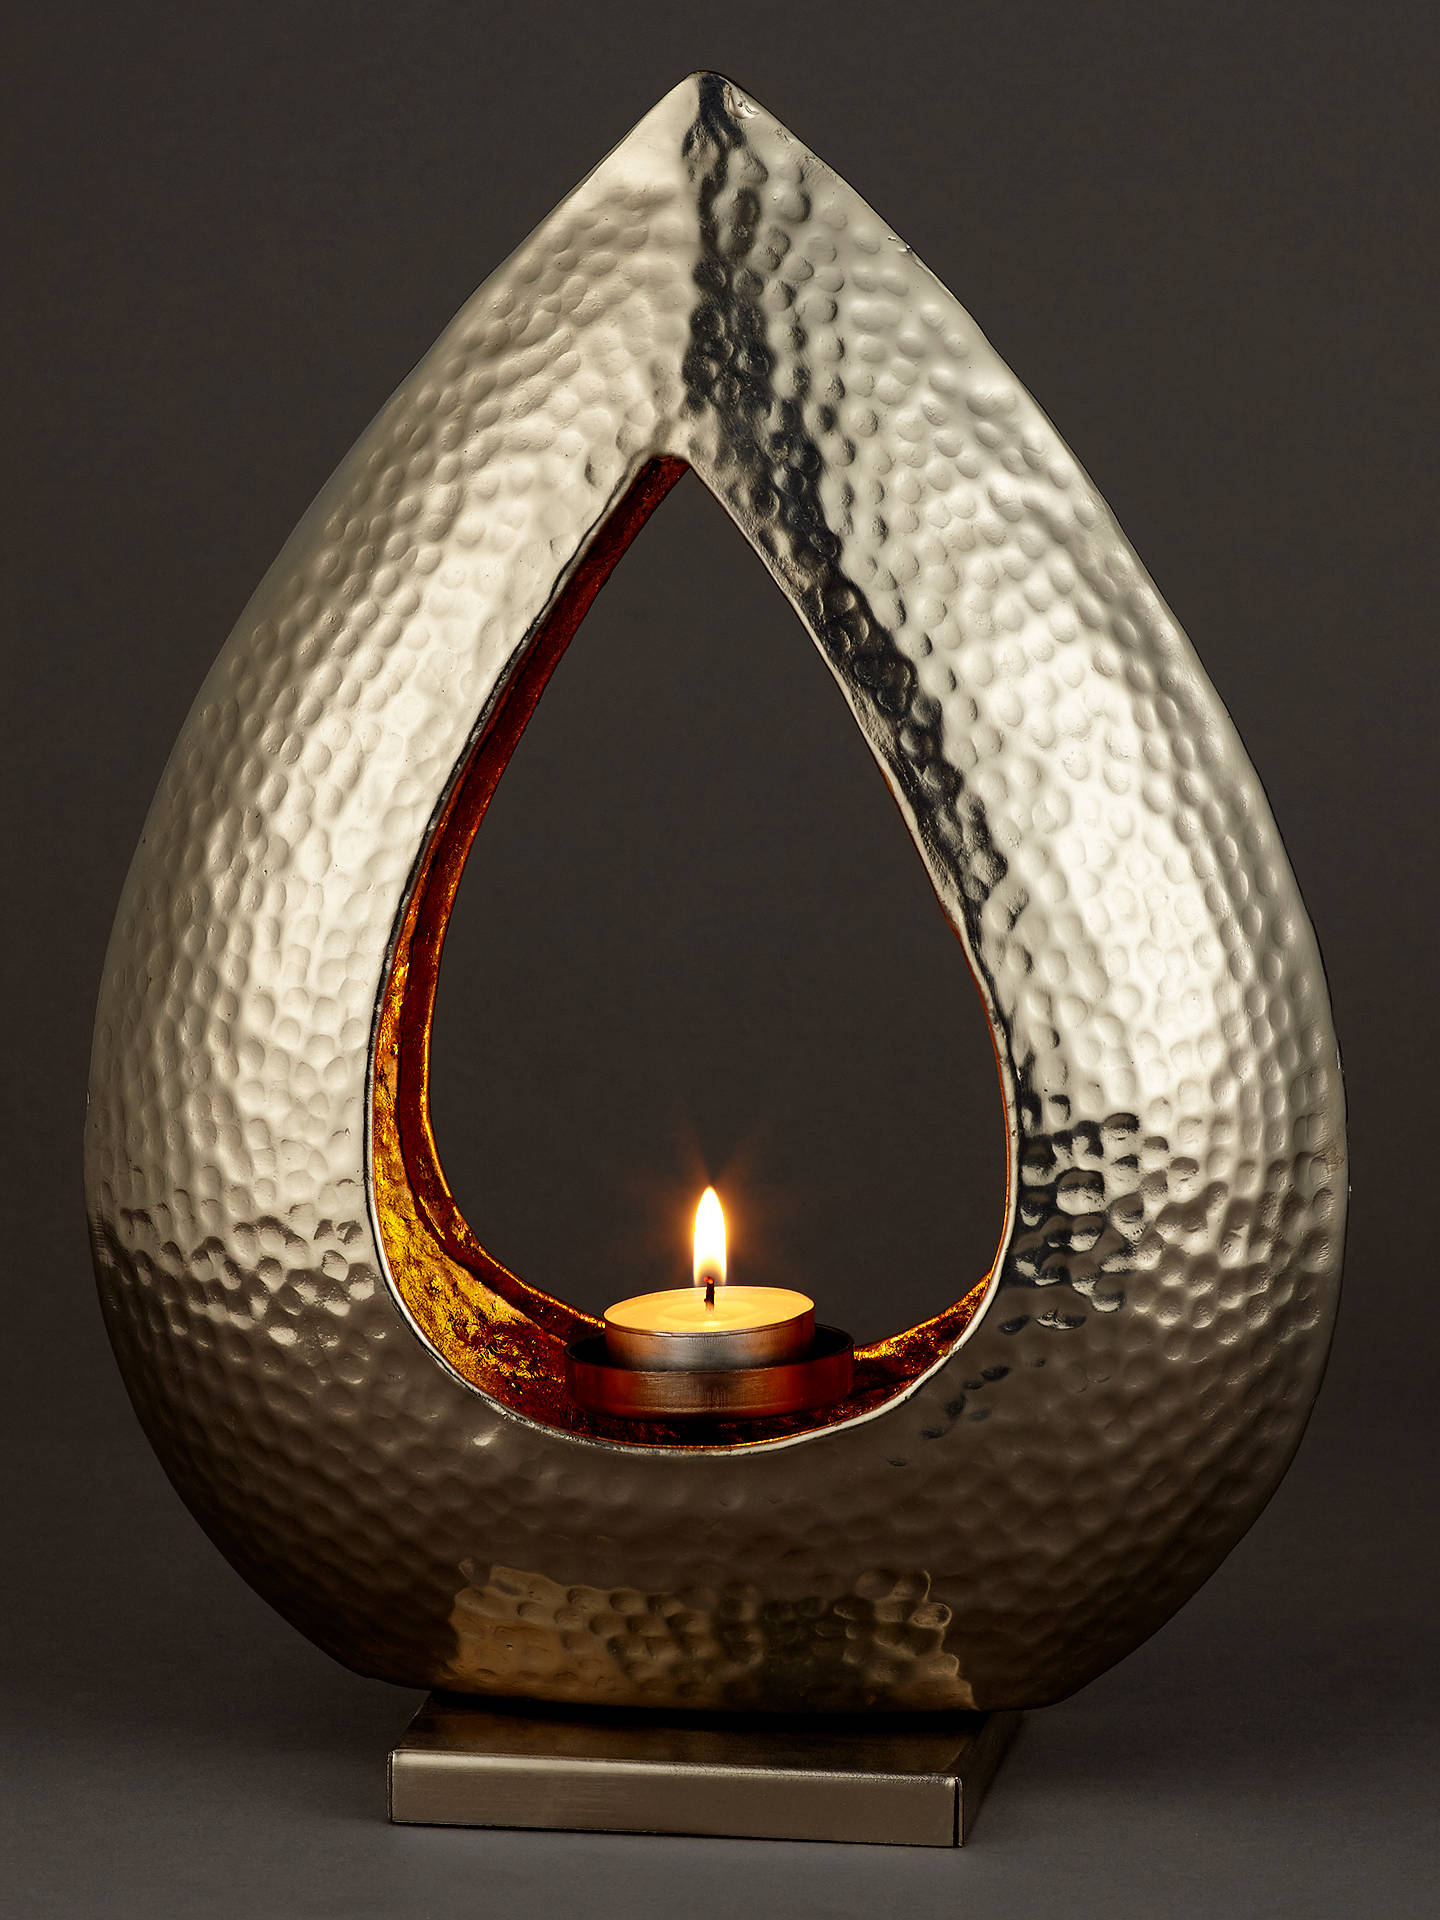 BuyJohn Lewis & Partners Hammered Teardrop Tealight Holder Online at johnlewis.com